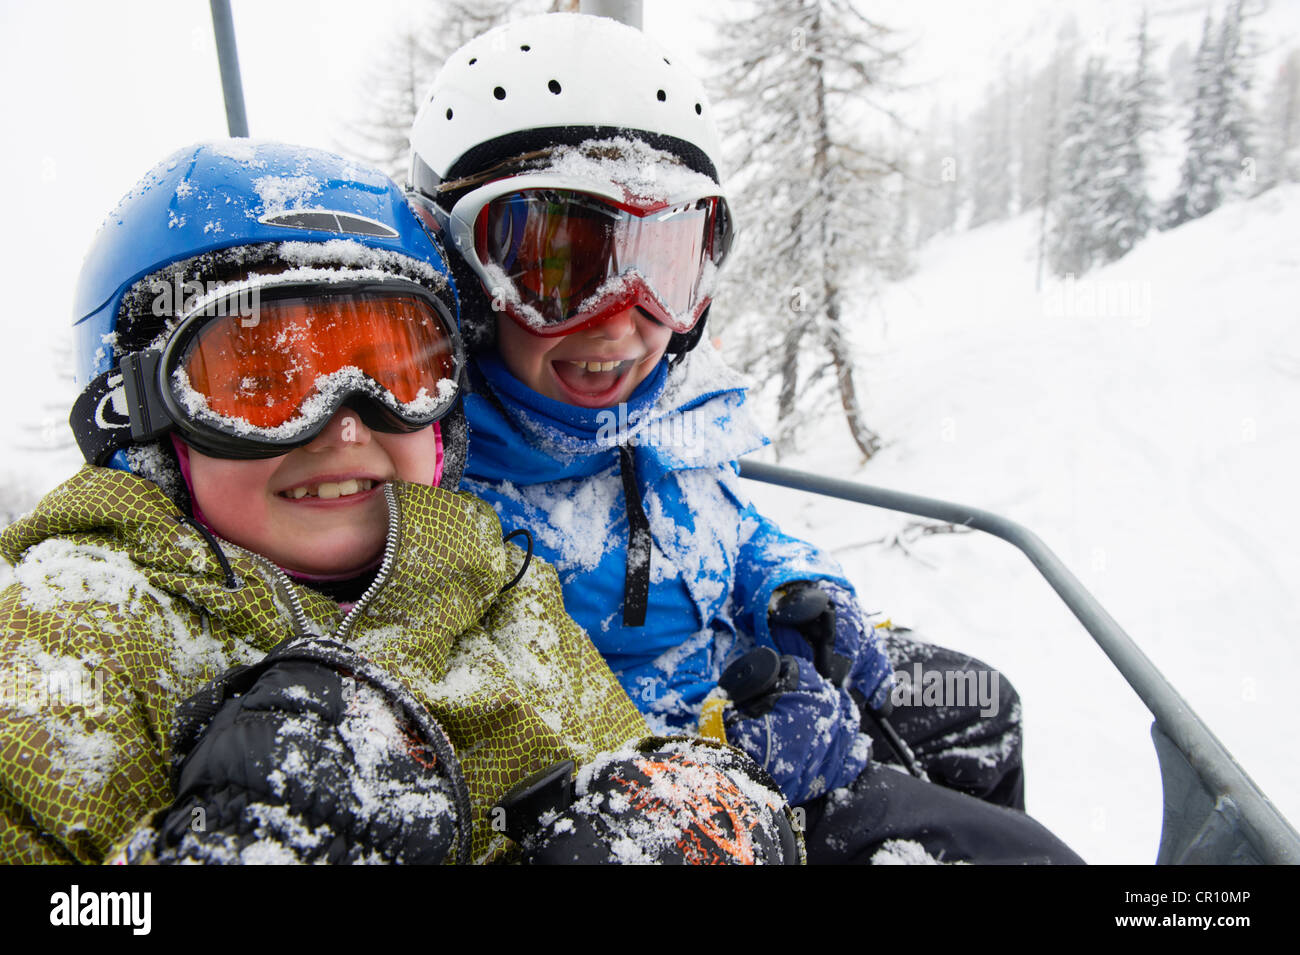 Snow-covered children in ski lift - Stock Image